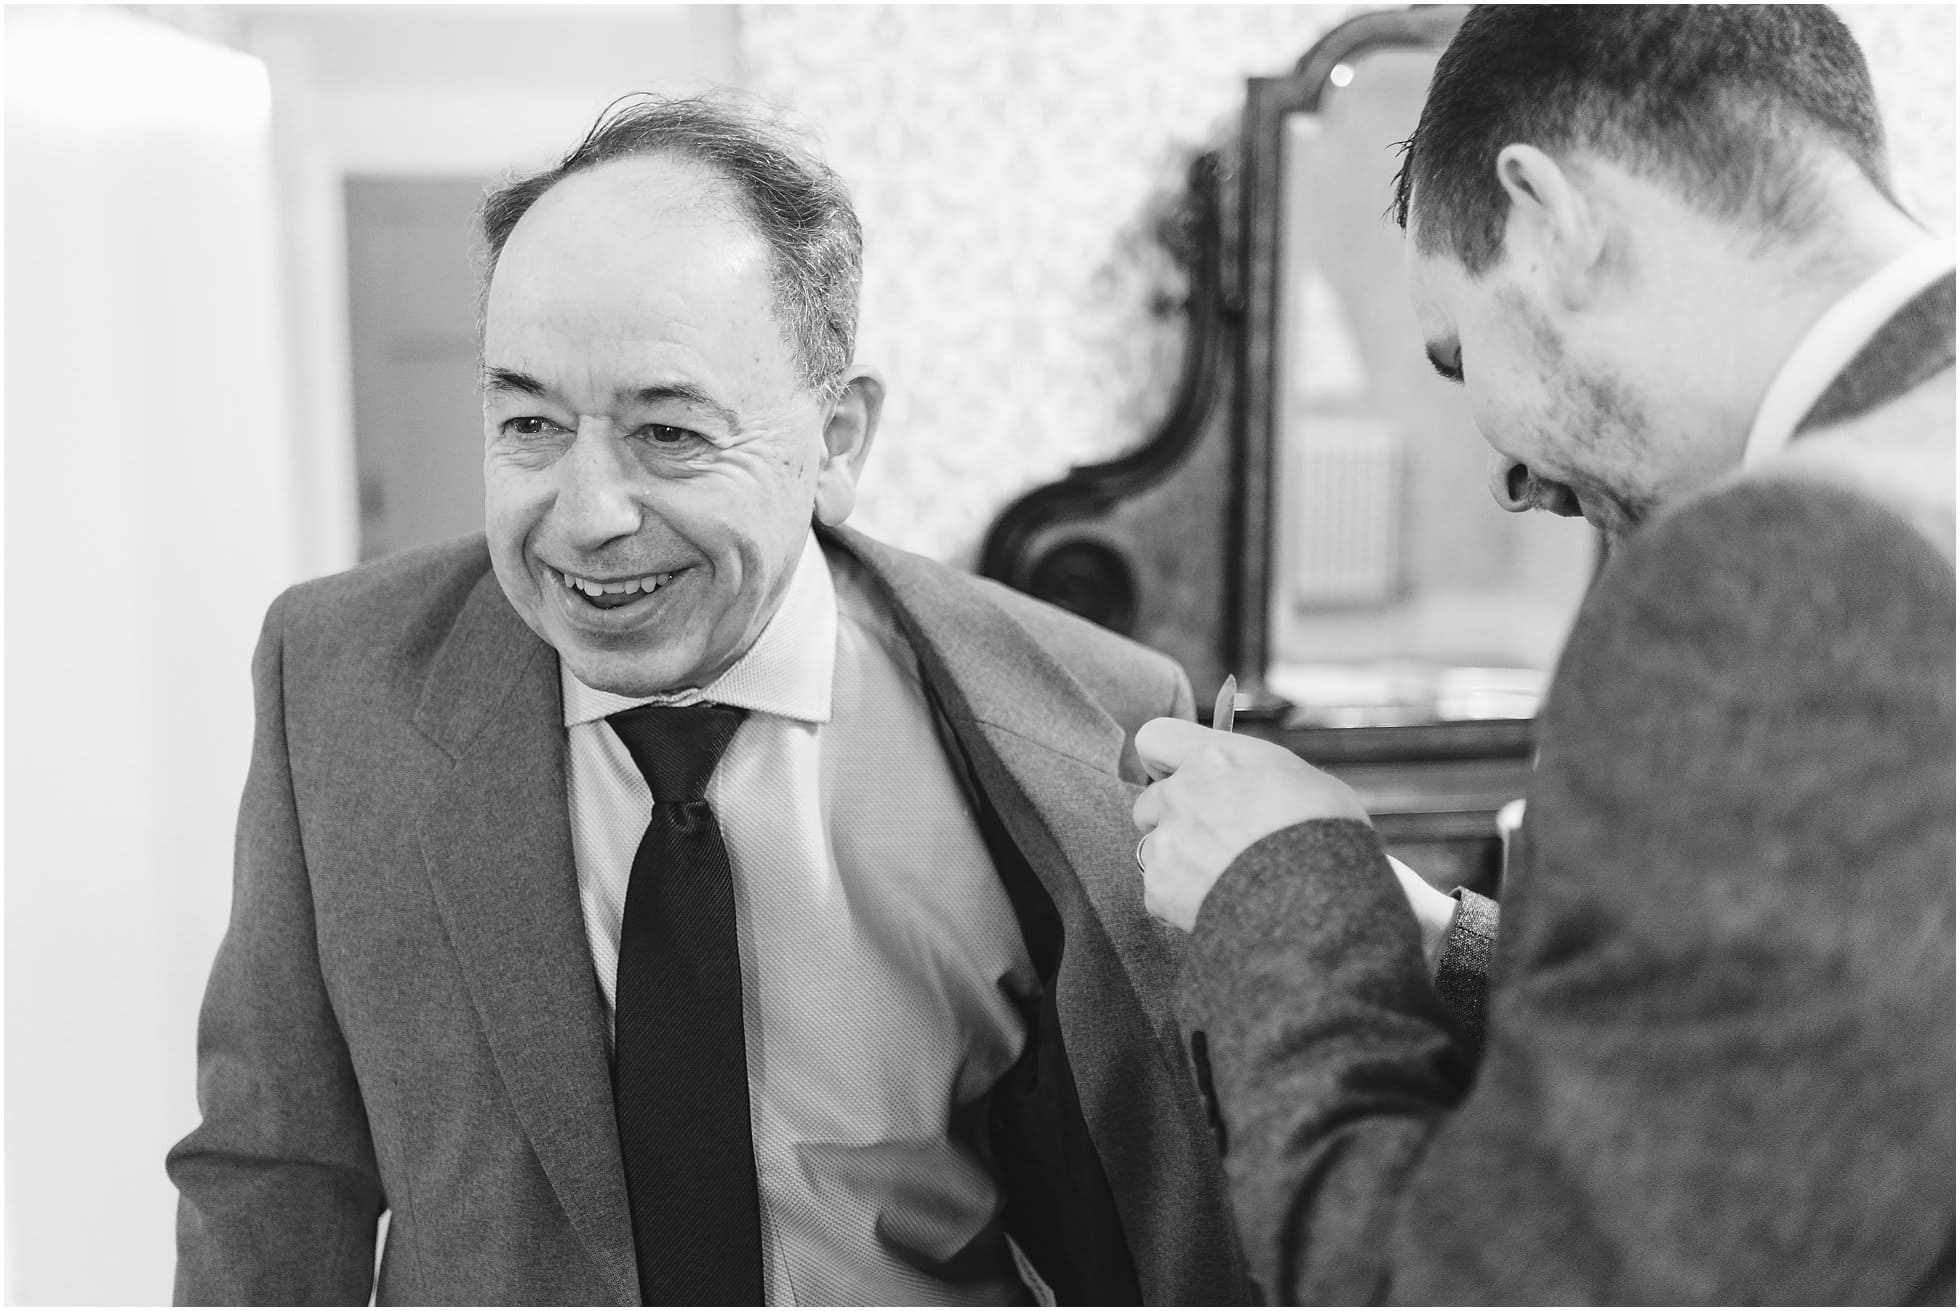 Father of the groom getting ready